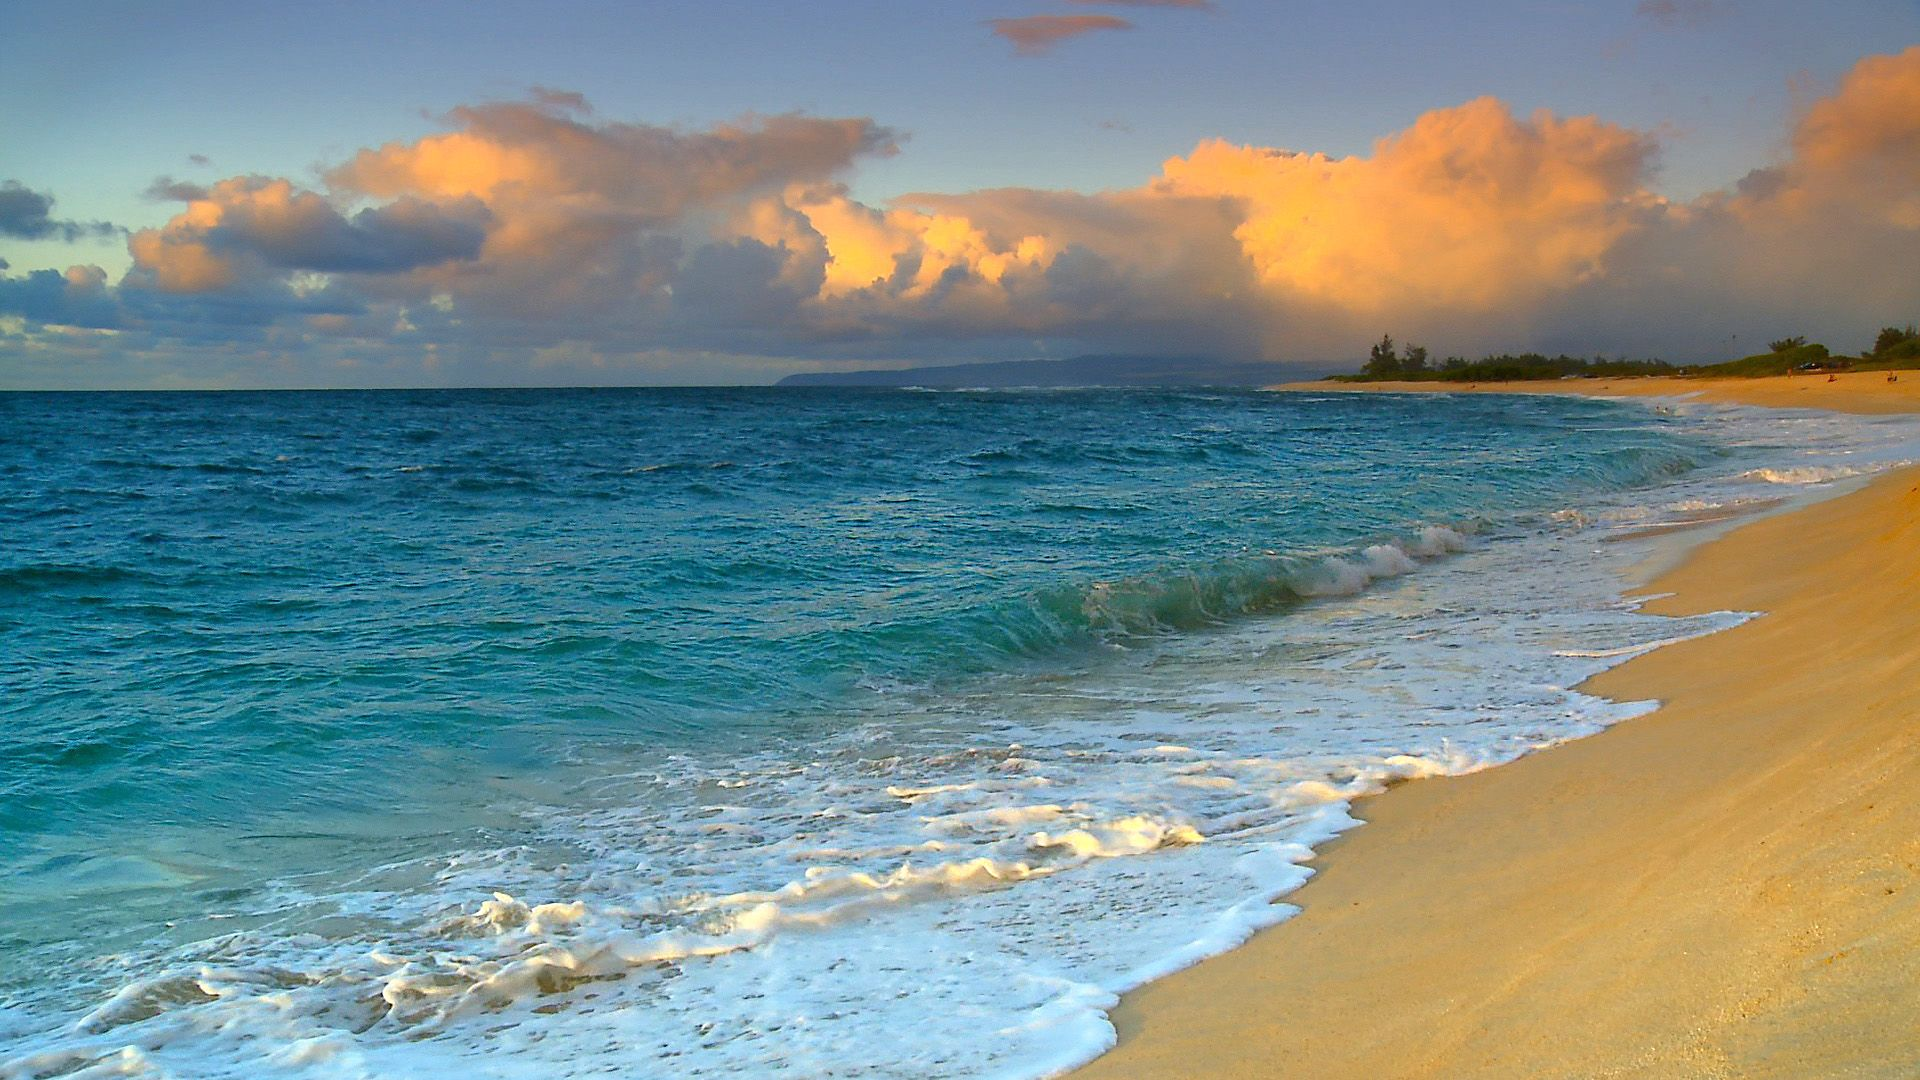 hawaii, photos, background, screensaver, beach, beaches, media